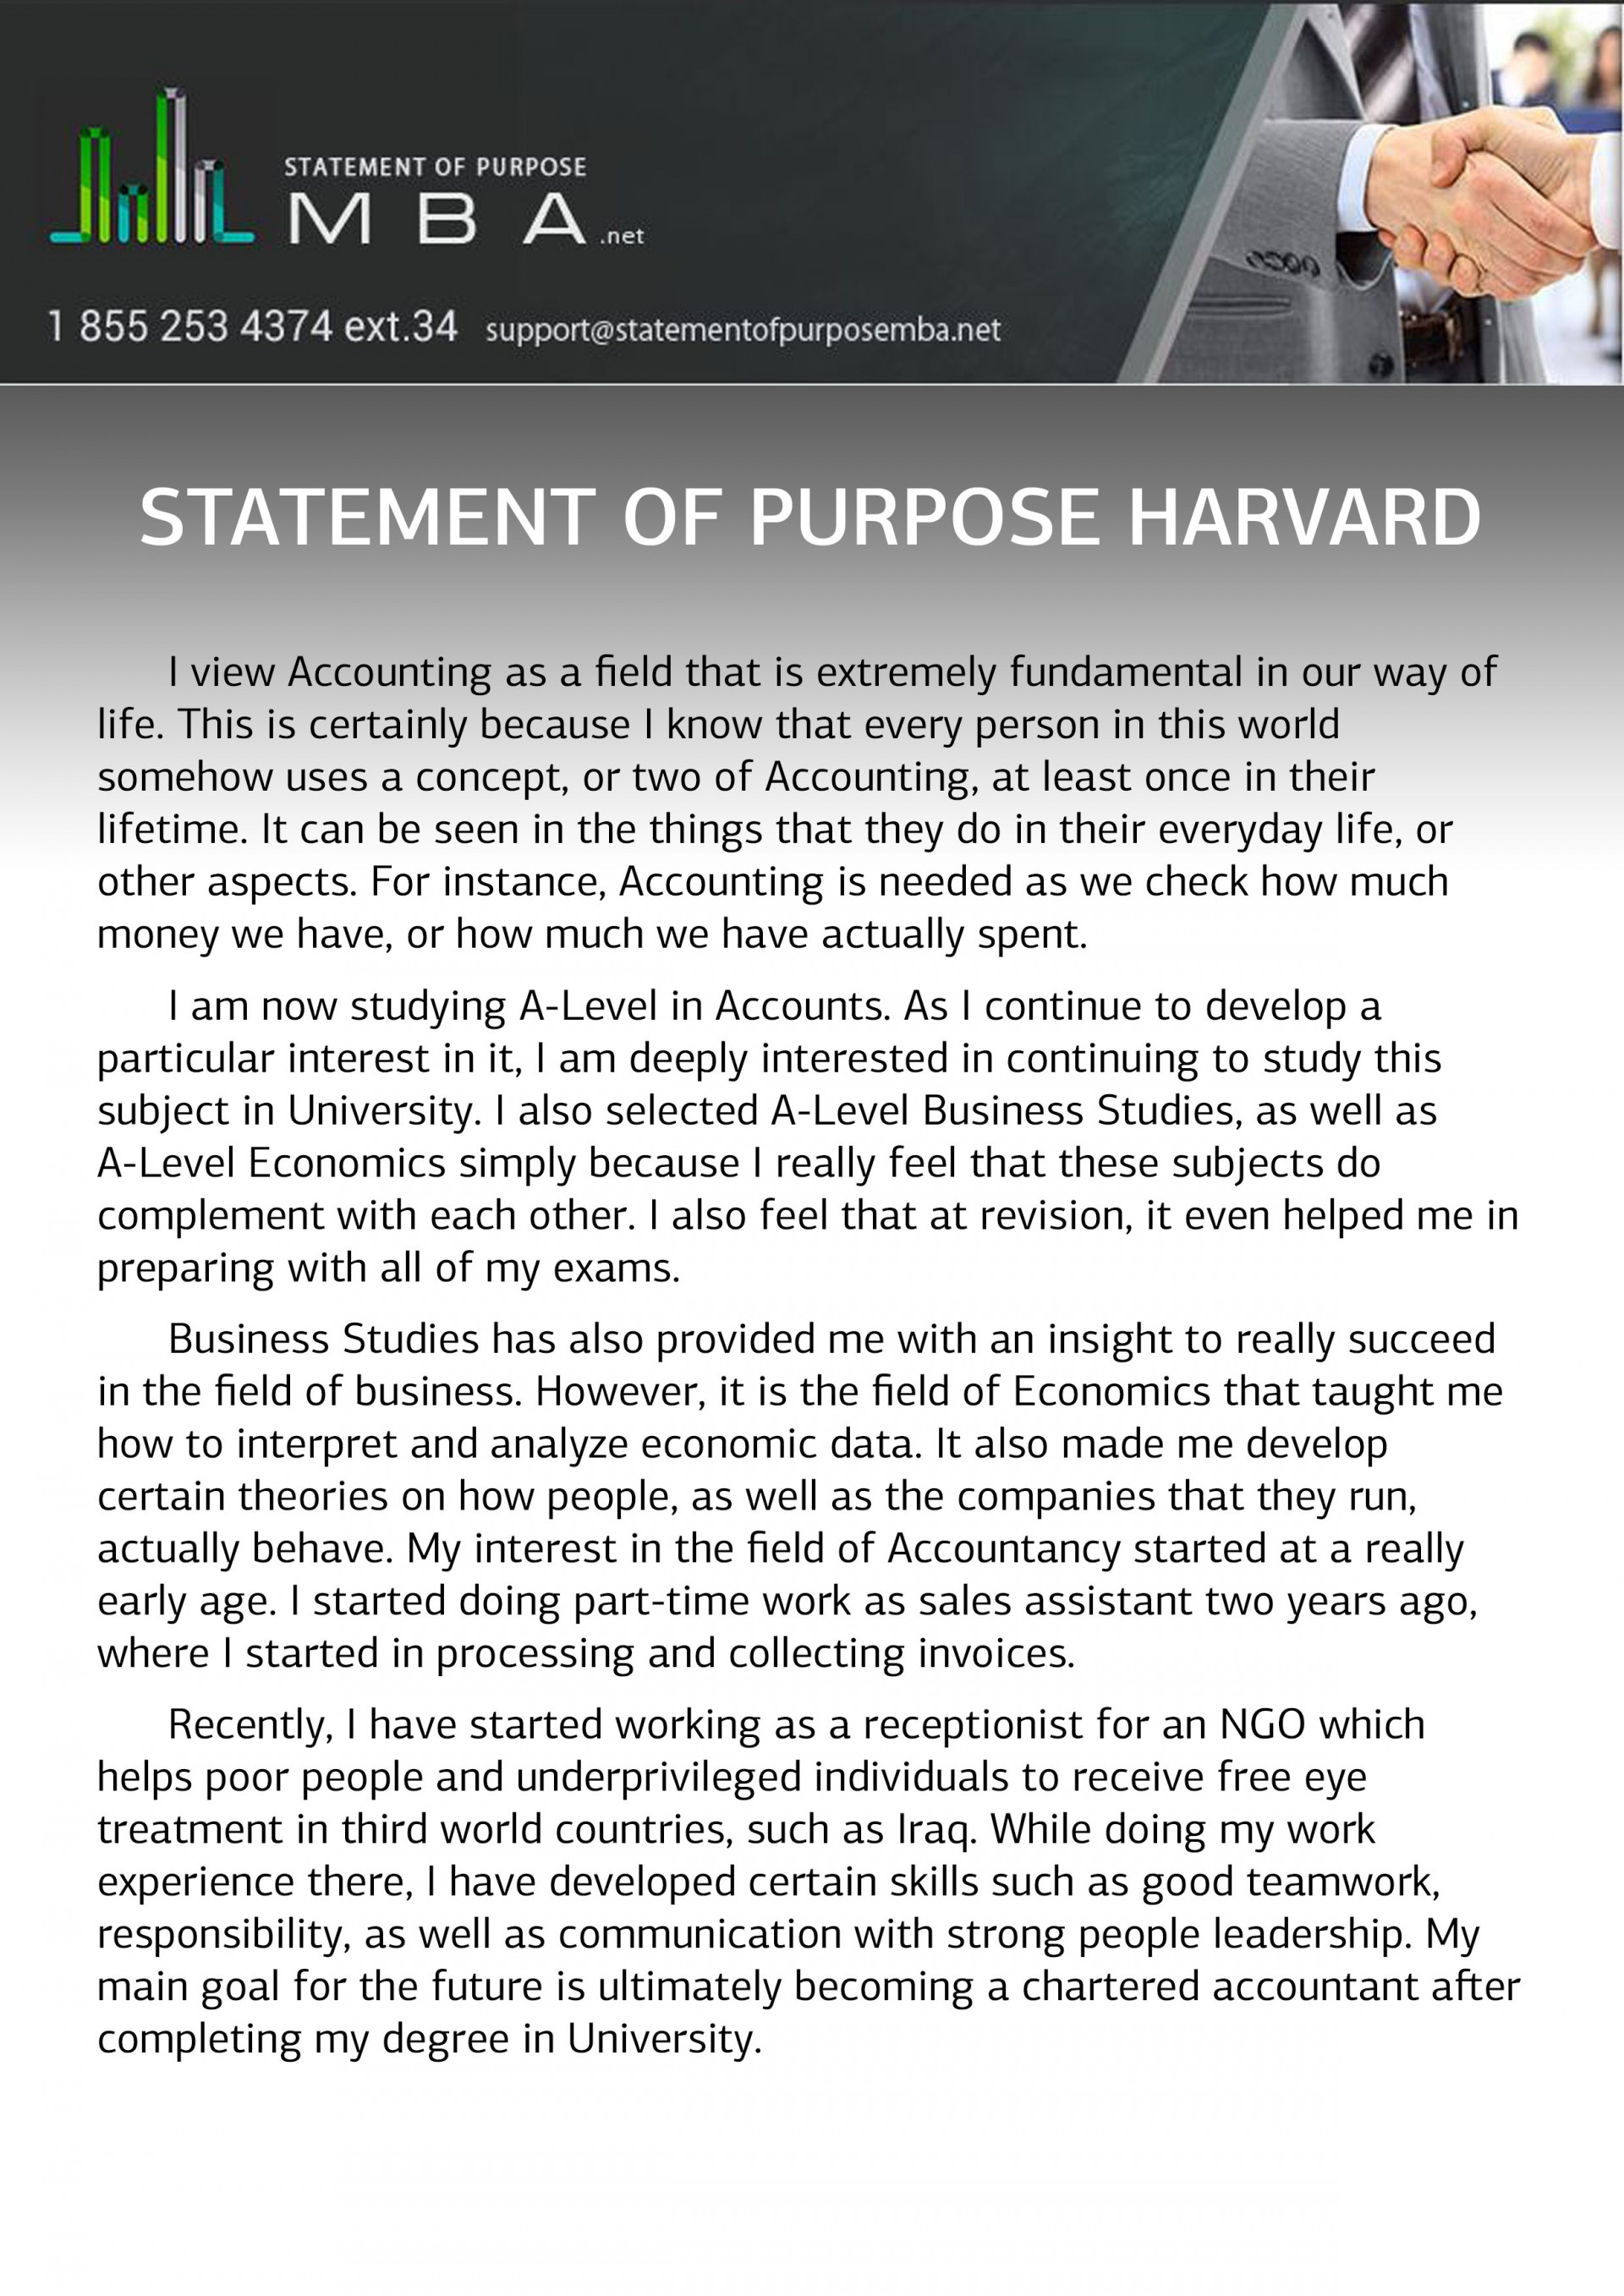 002 Stanford Mba Essay Sample Harvard Business School Application Statement Of Pu Formats Columbia Essays Best Ie Phenomenal 2019 Analysis Tips 1920